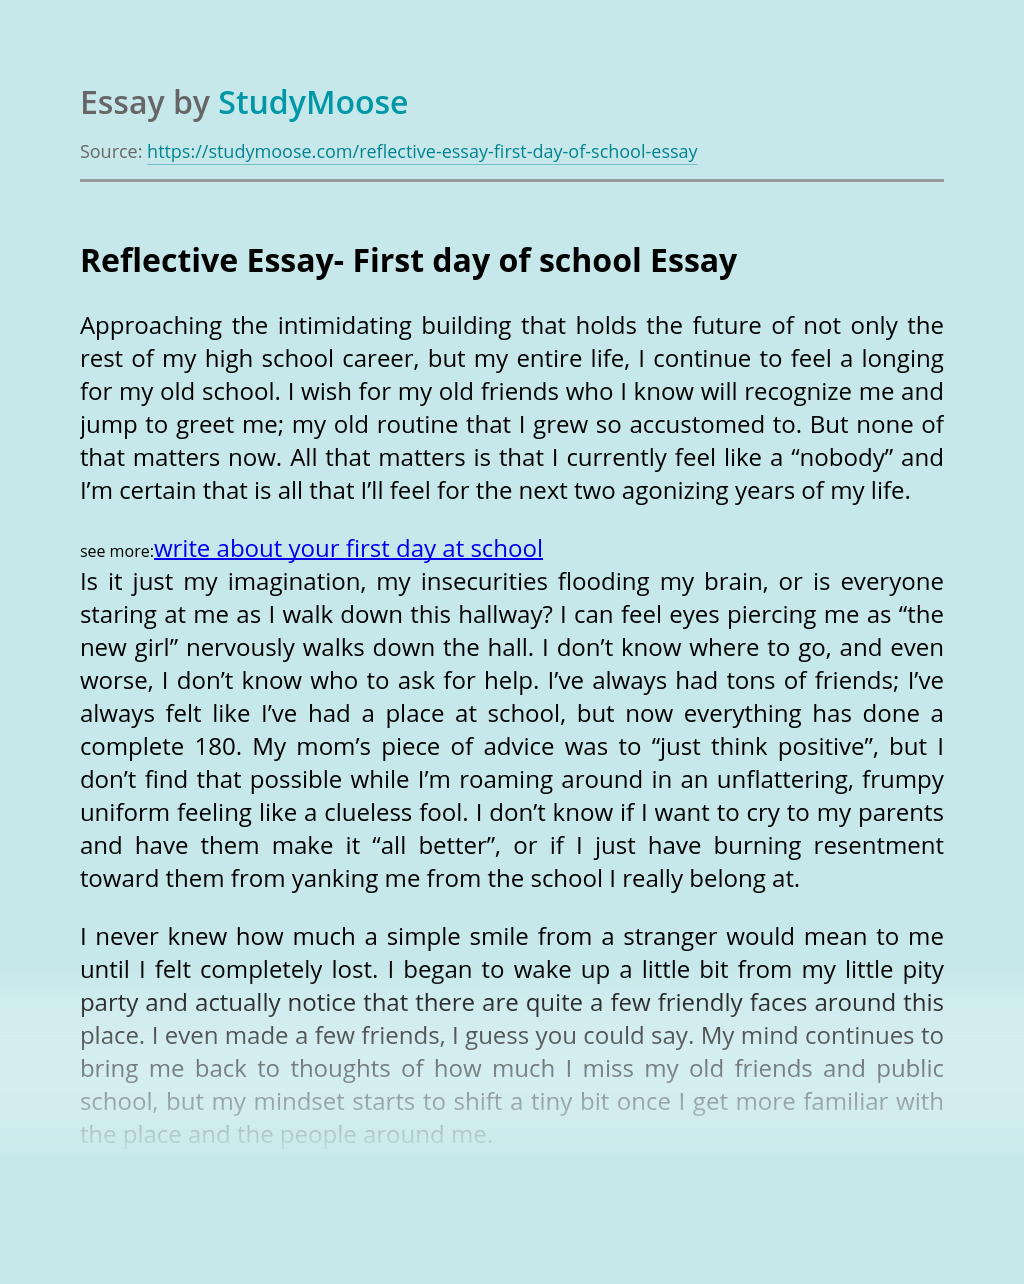 Reflective Essay- First day of school